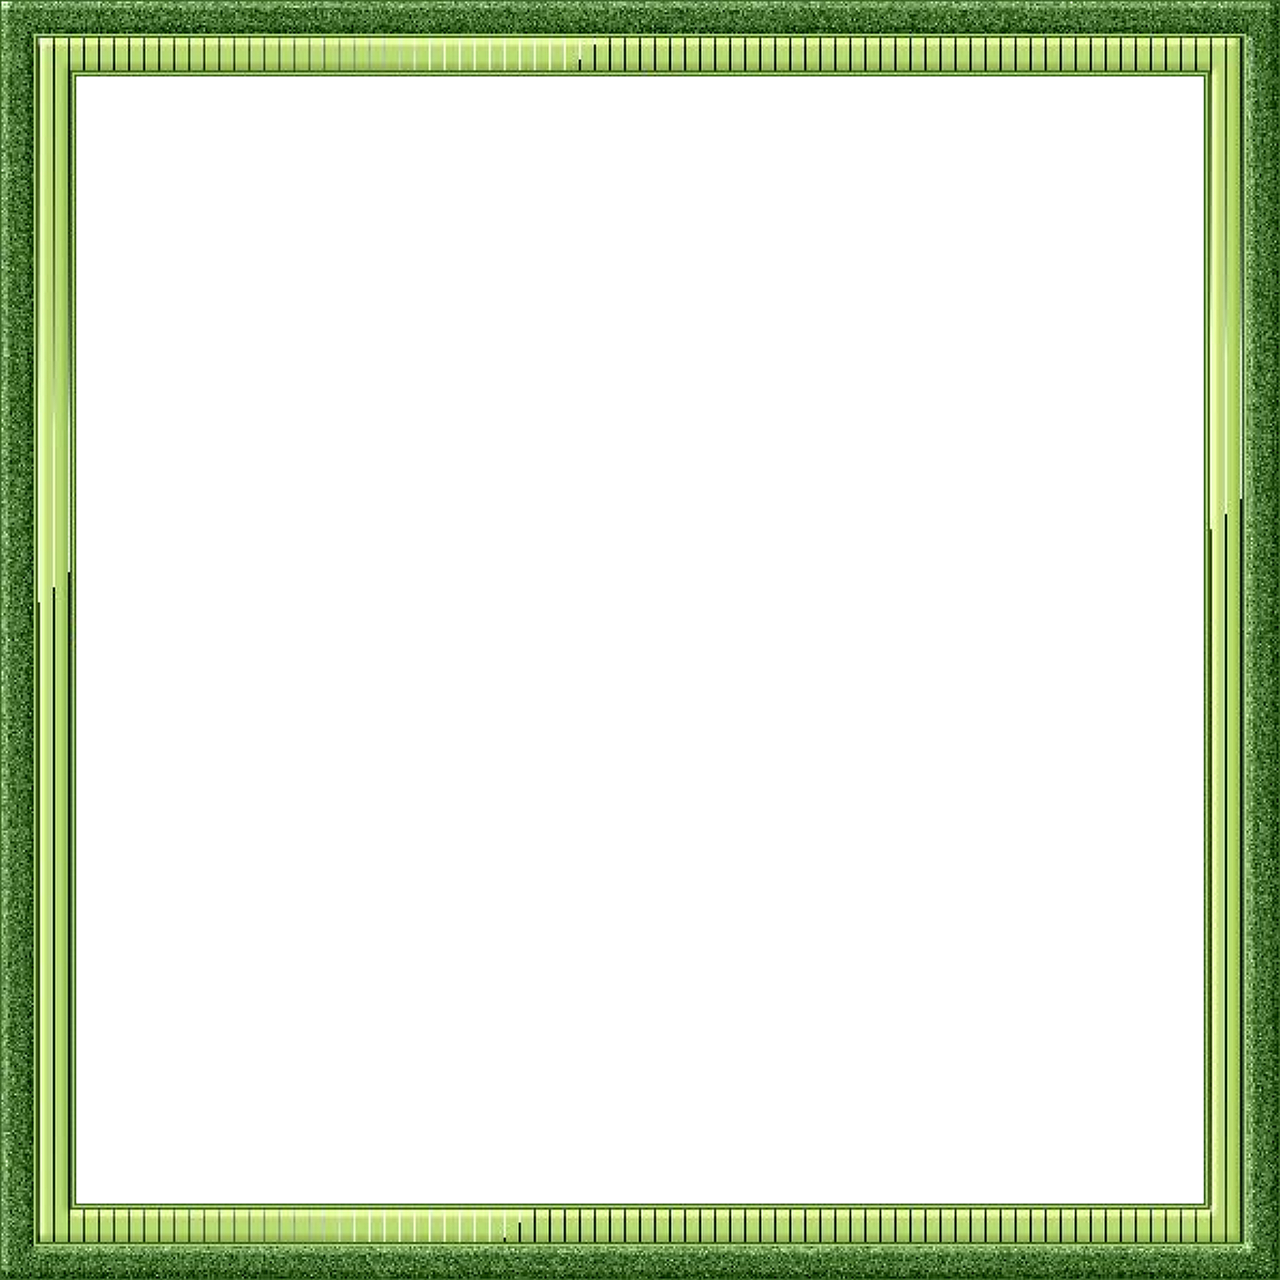 picture frame green photo free image on pixabay https creativecommons org licenses publicdomain